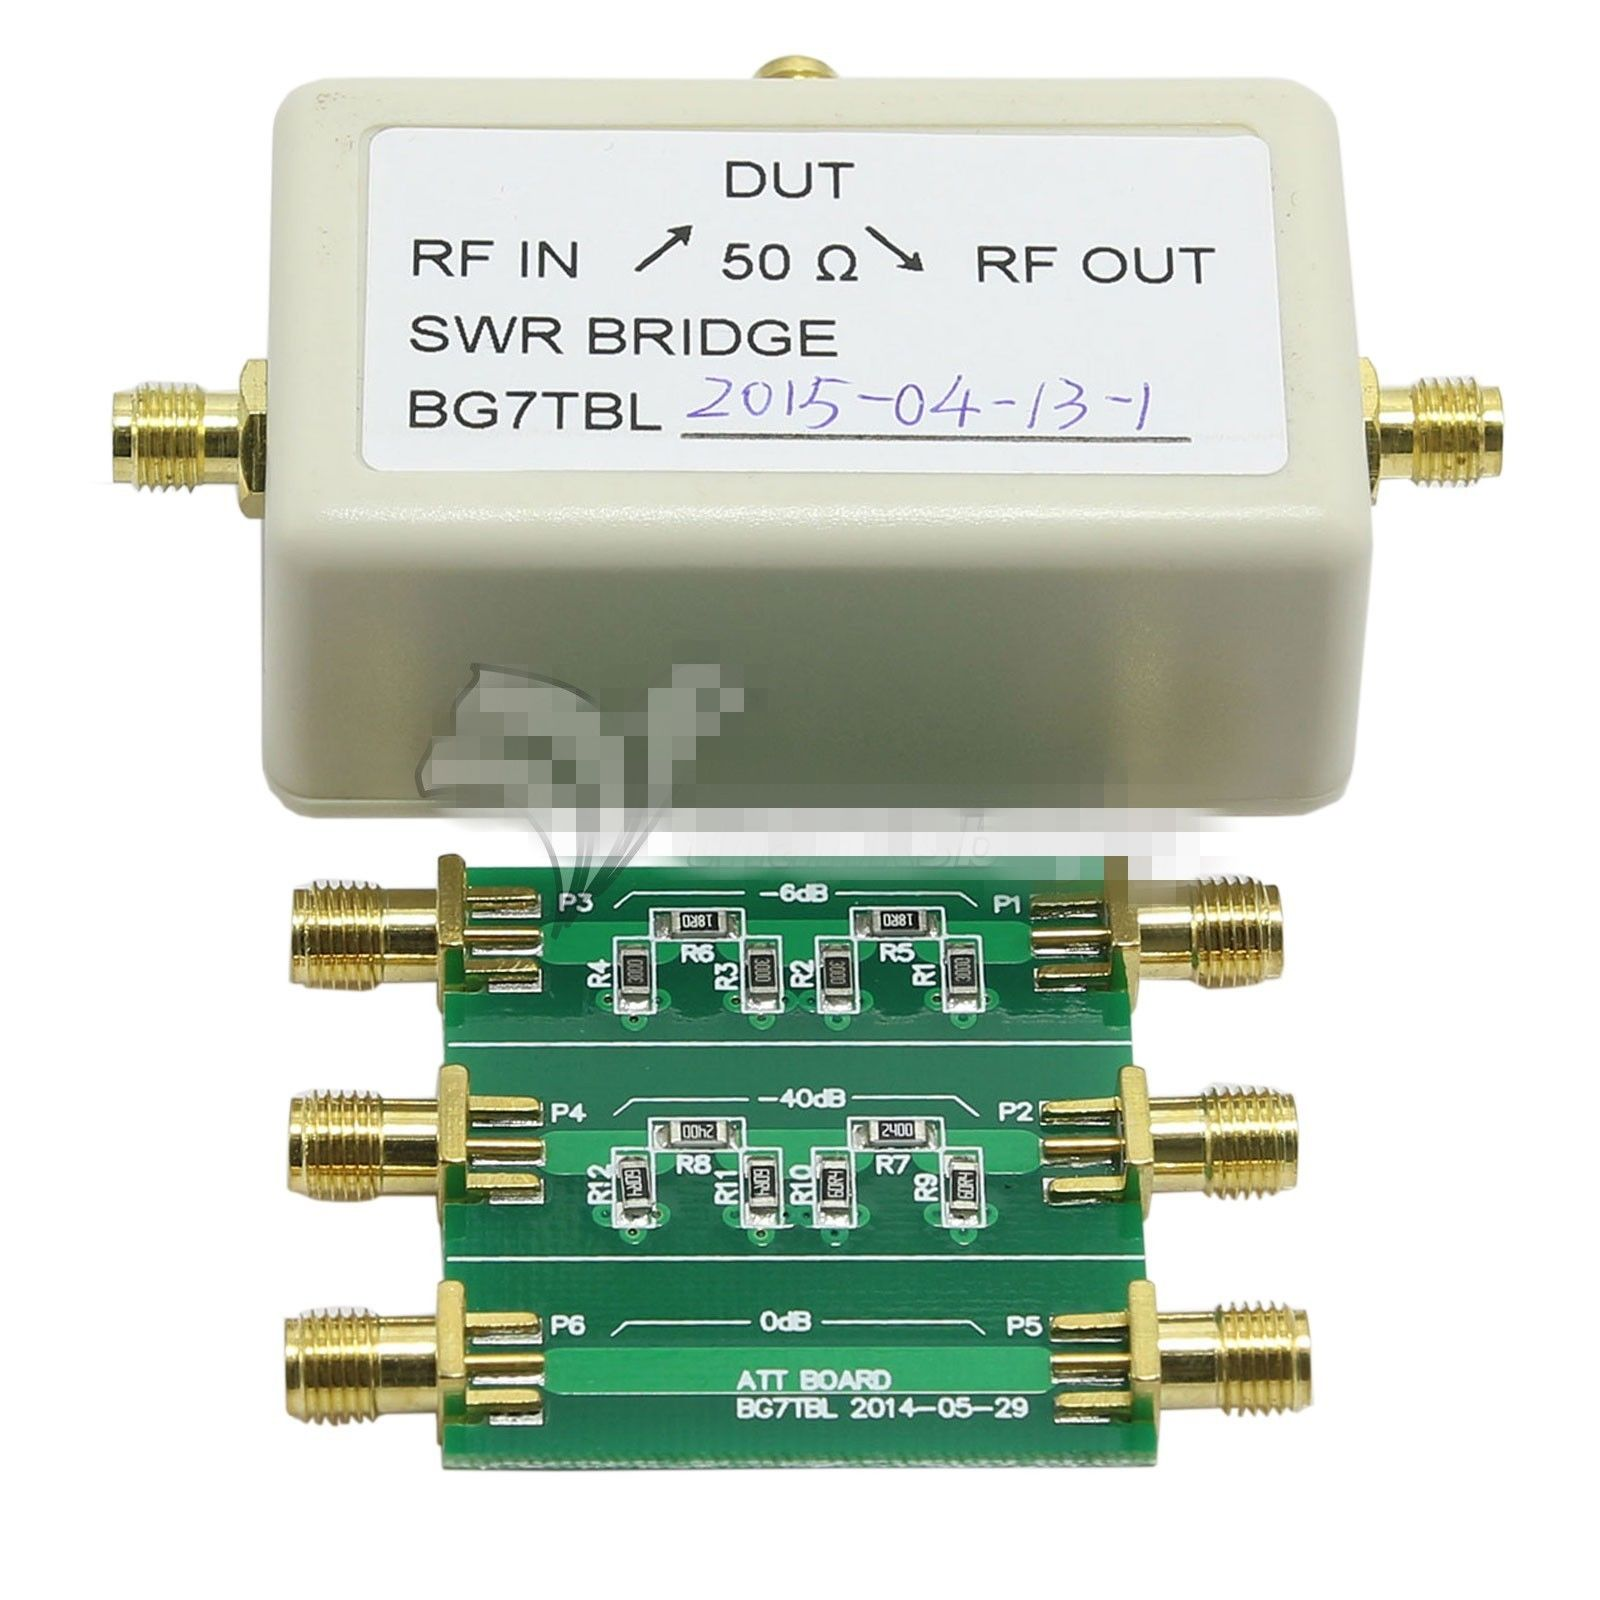 1M 500M SWR Electronic Bridge Standing Wave Bridge 6dB 40dB Attenuator NWT Series Frequency Sweep Meter